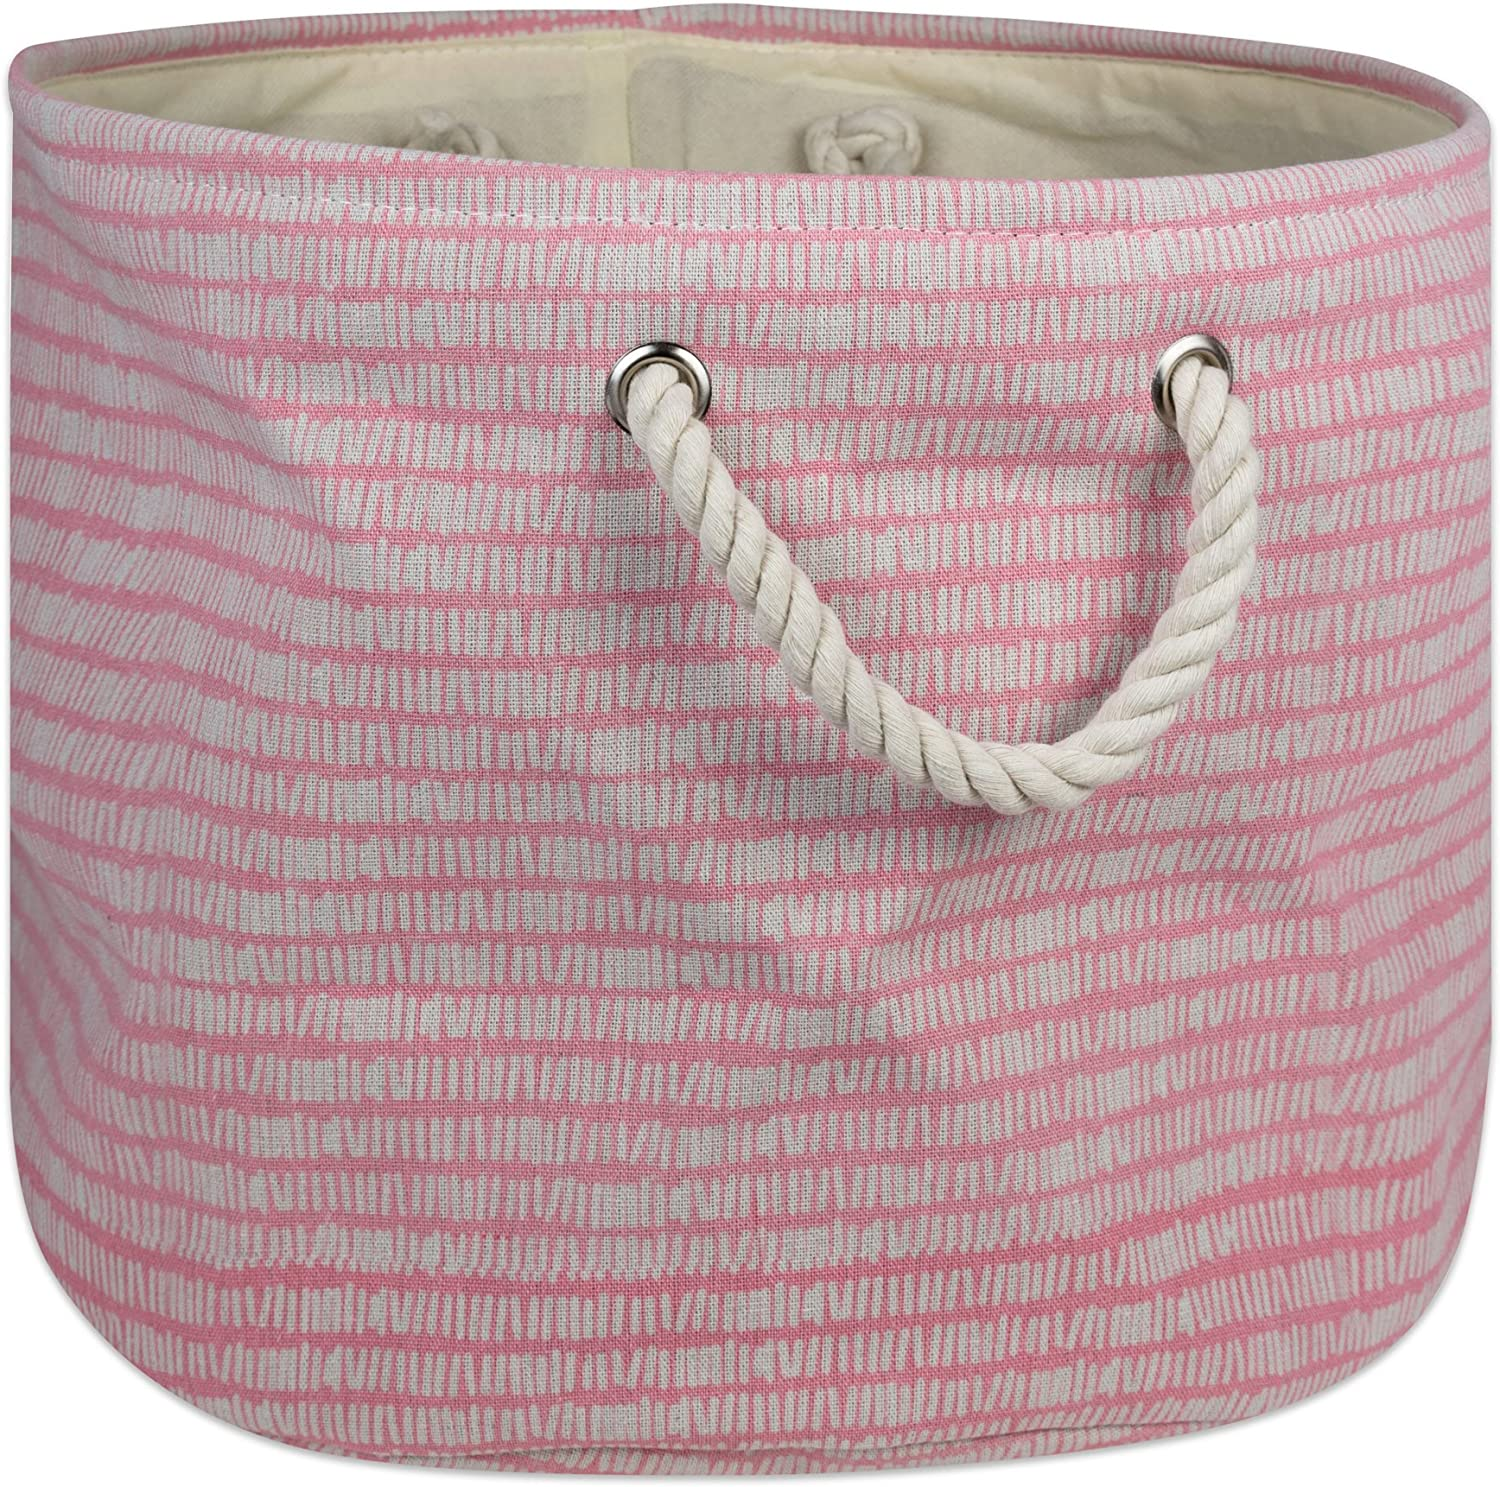 DII Collapsible Polyester Storage Basket or Bin with Durable Cotton Handles, Home Organizer Solution for Office, Bedroom Closet, Toys, Laundry, Medium Round, Pink Sorbet